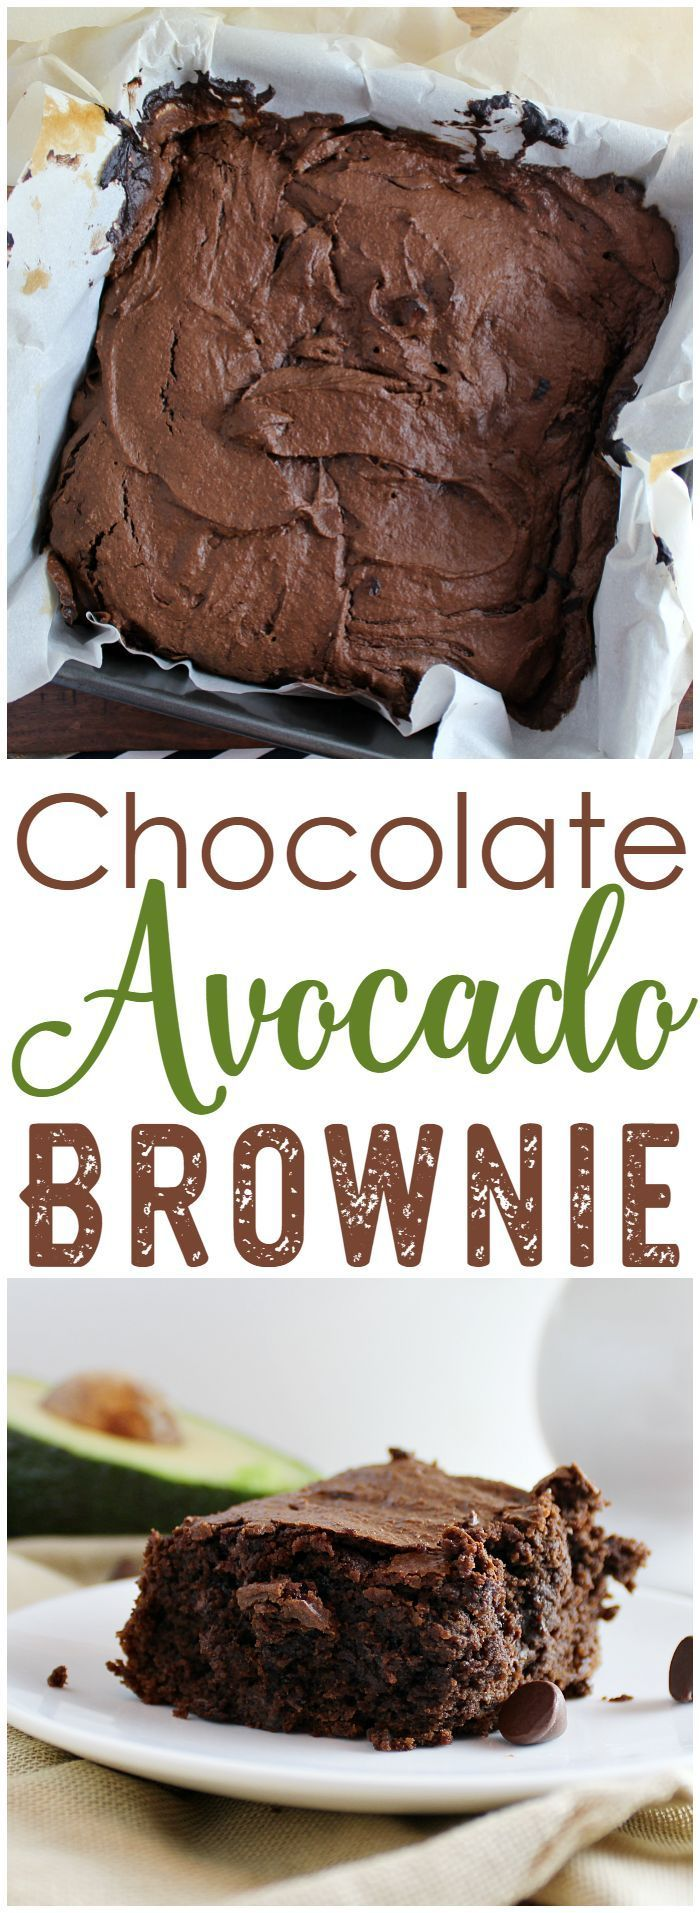 The 25+ best Craving chocolate ideas on Pinterest   Almonds ...